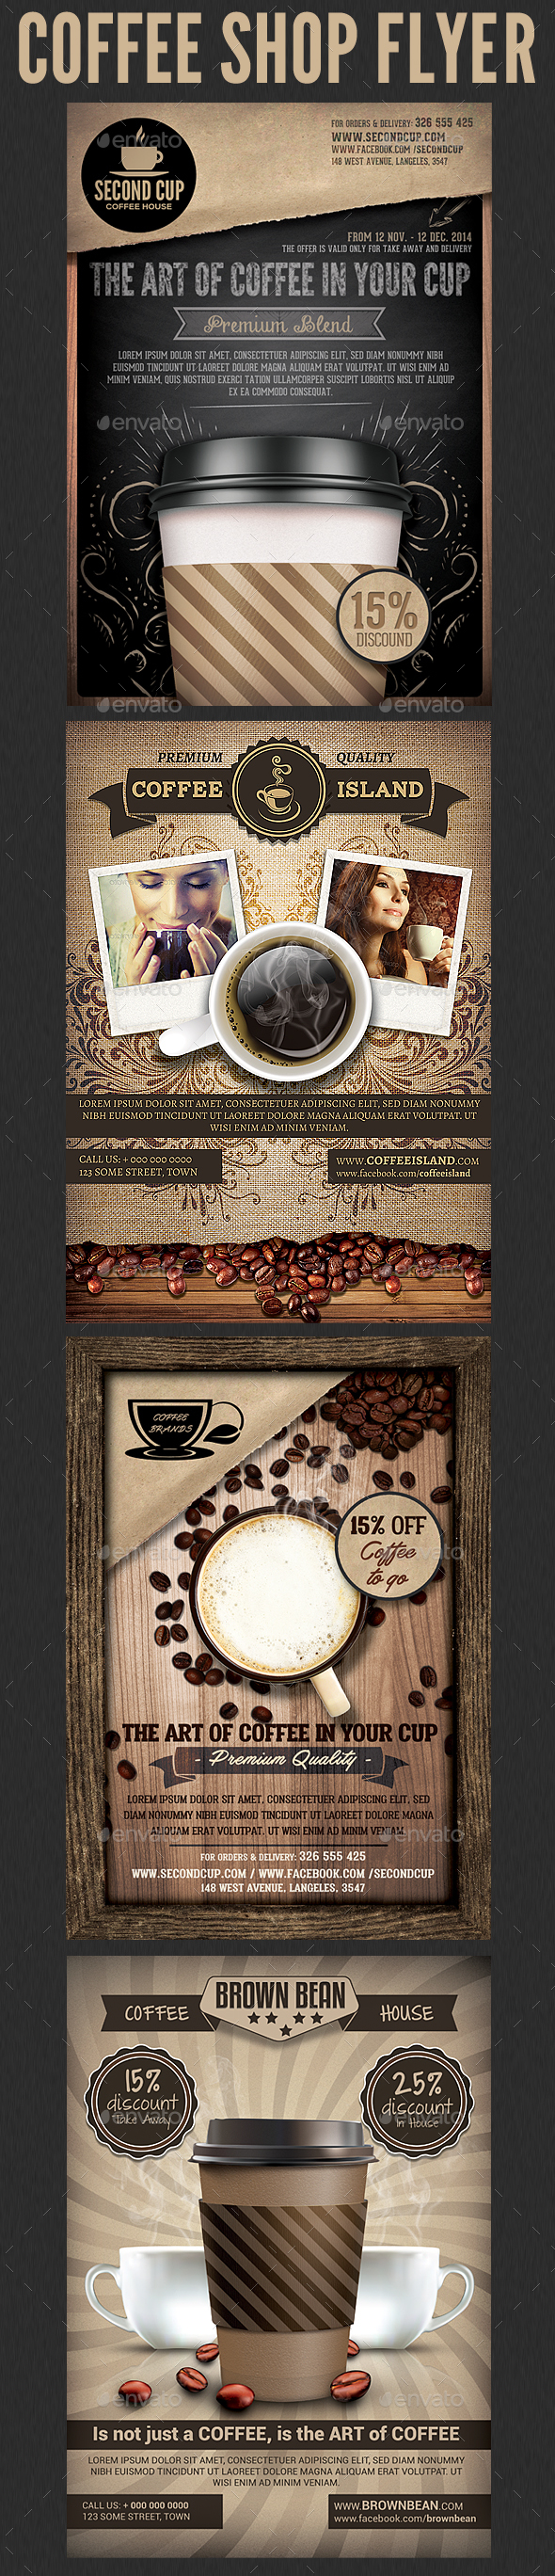 Coffee Shop Promotion Flyer Template Bundle - Flyers Print Templates